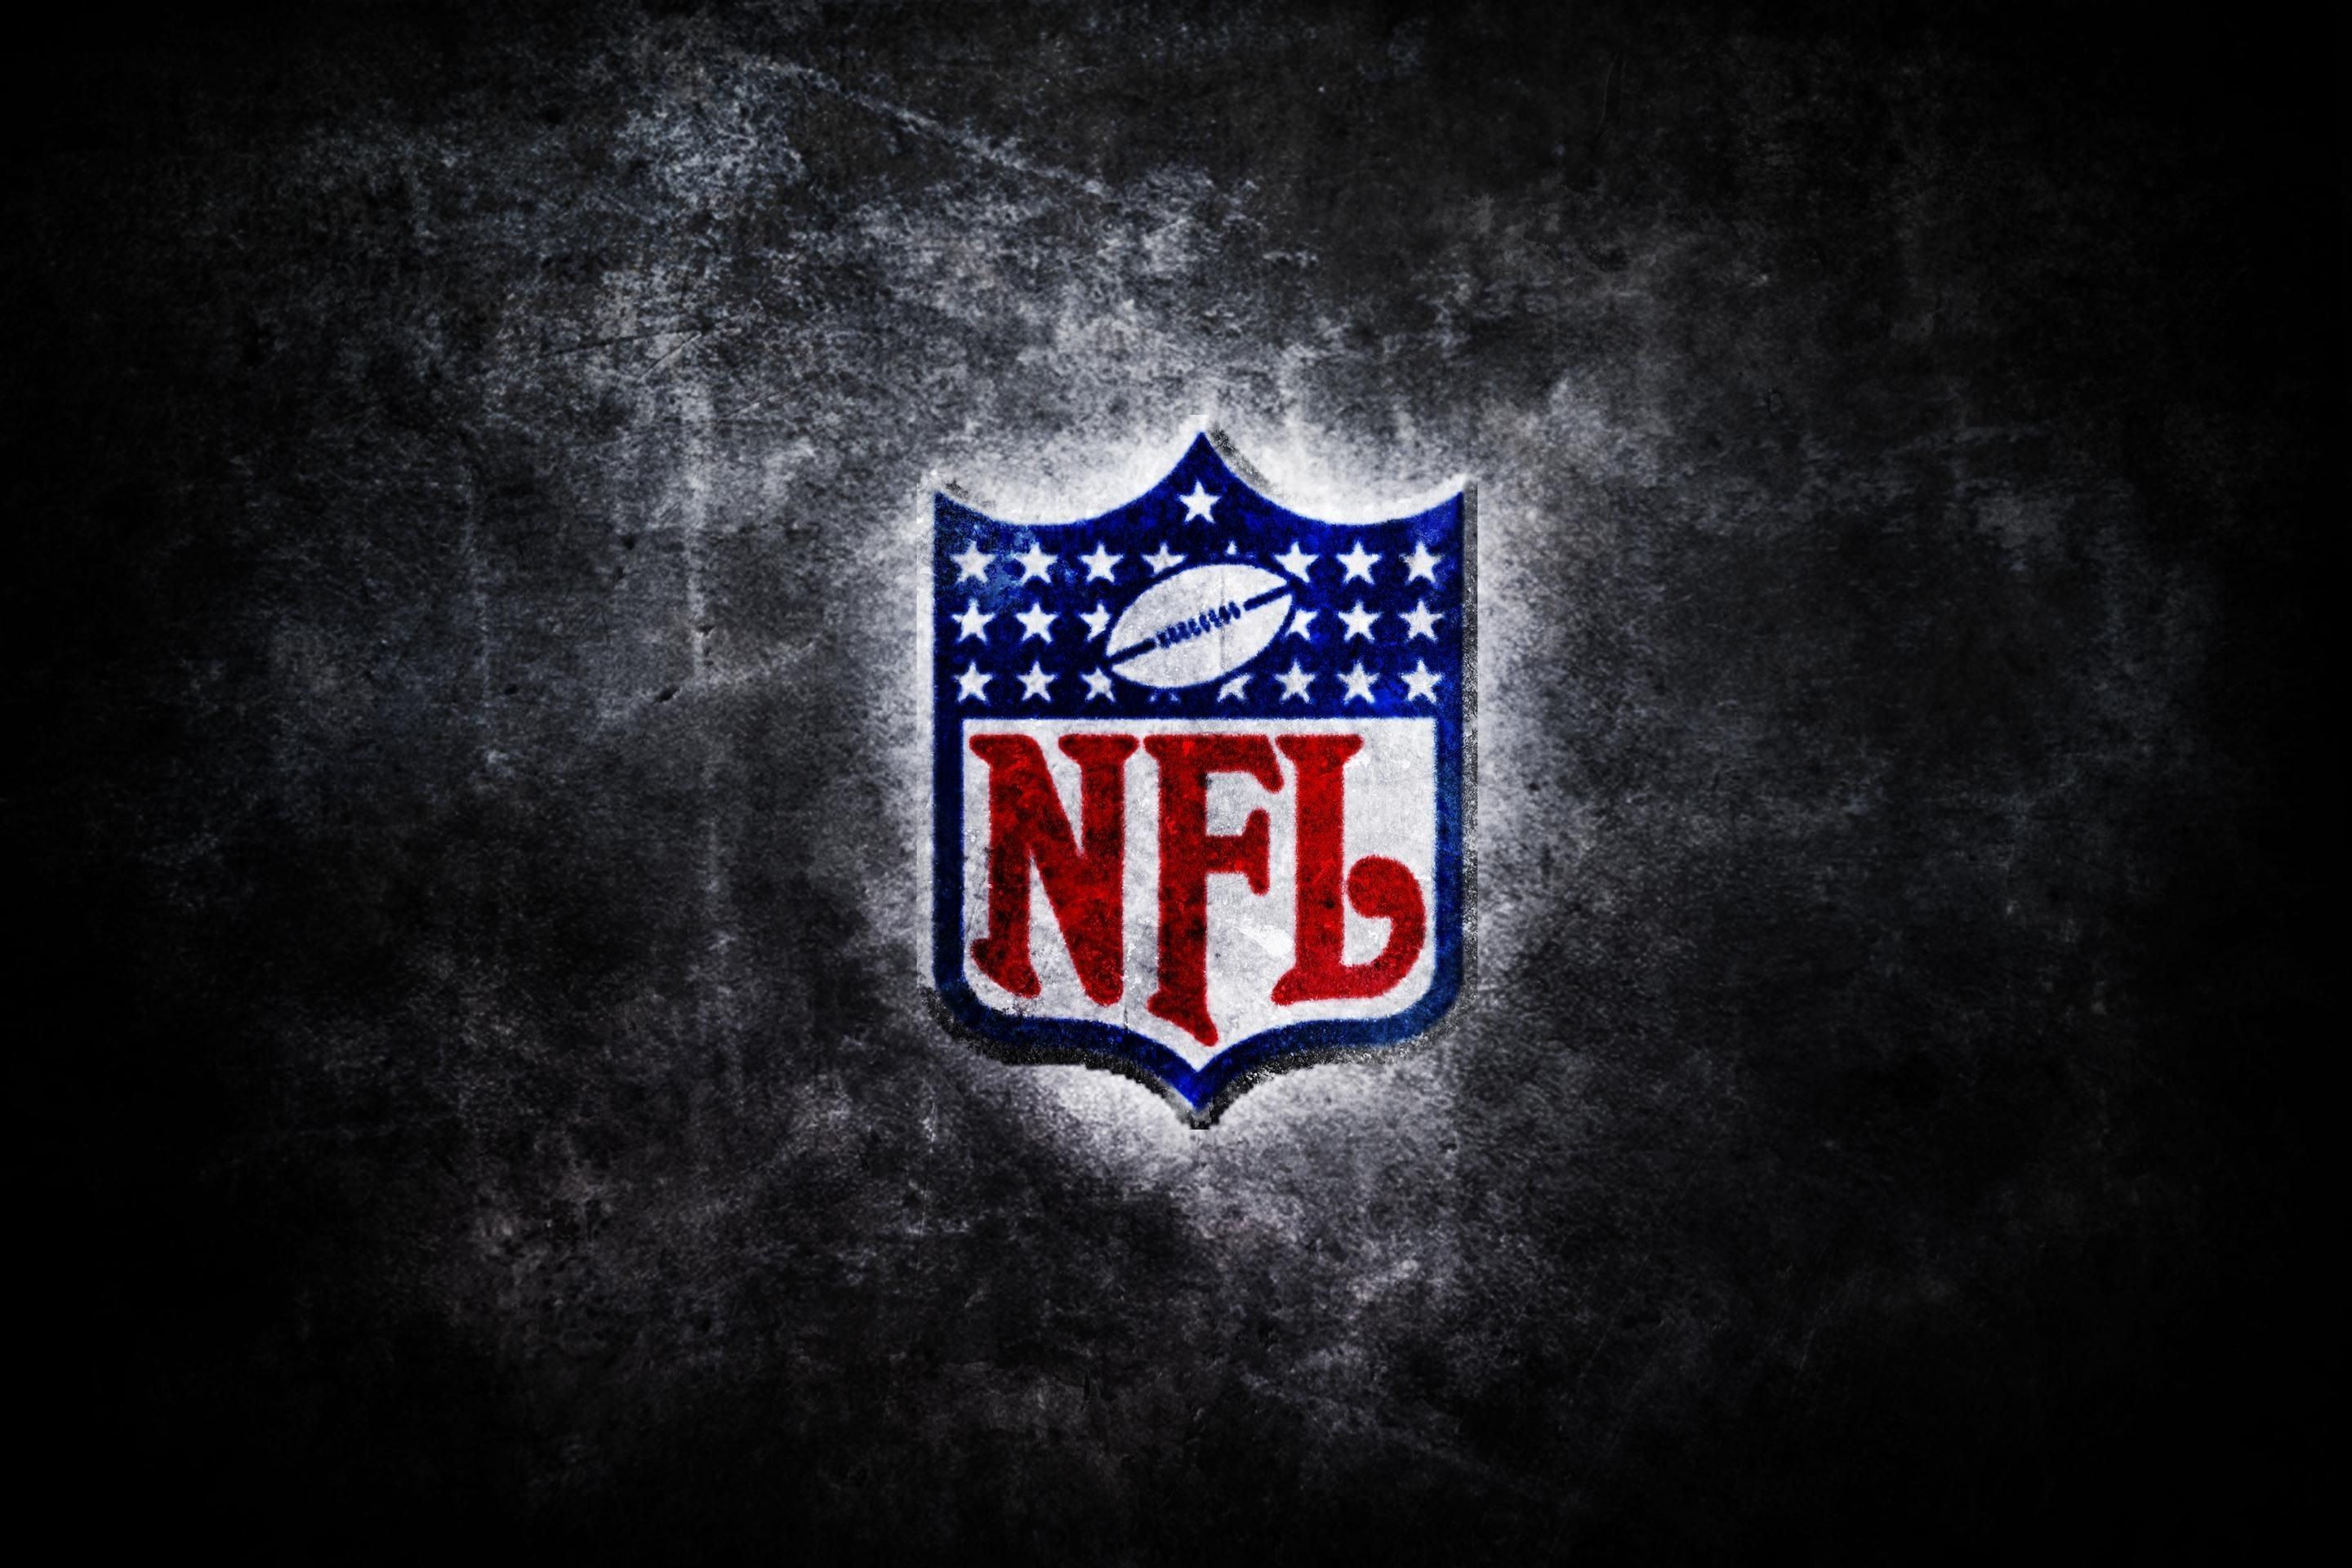 2880x1920 Nfl Logo Wallpapers - Wallpaper Cave